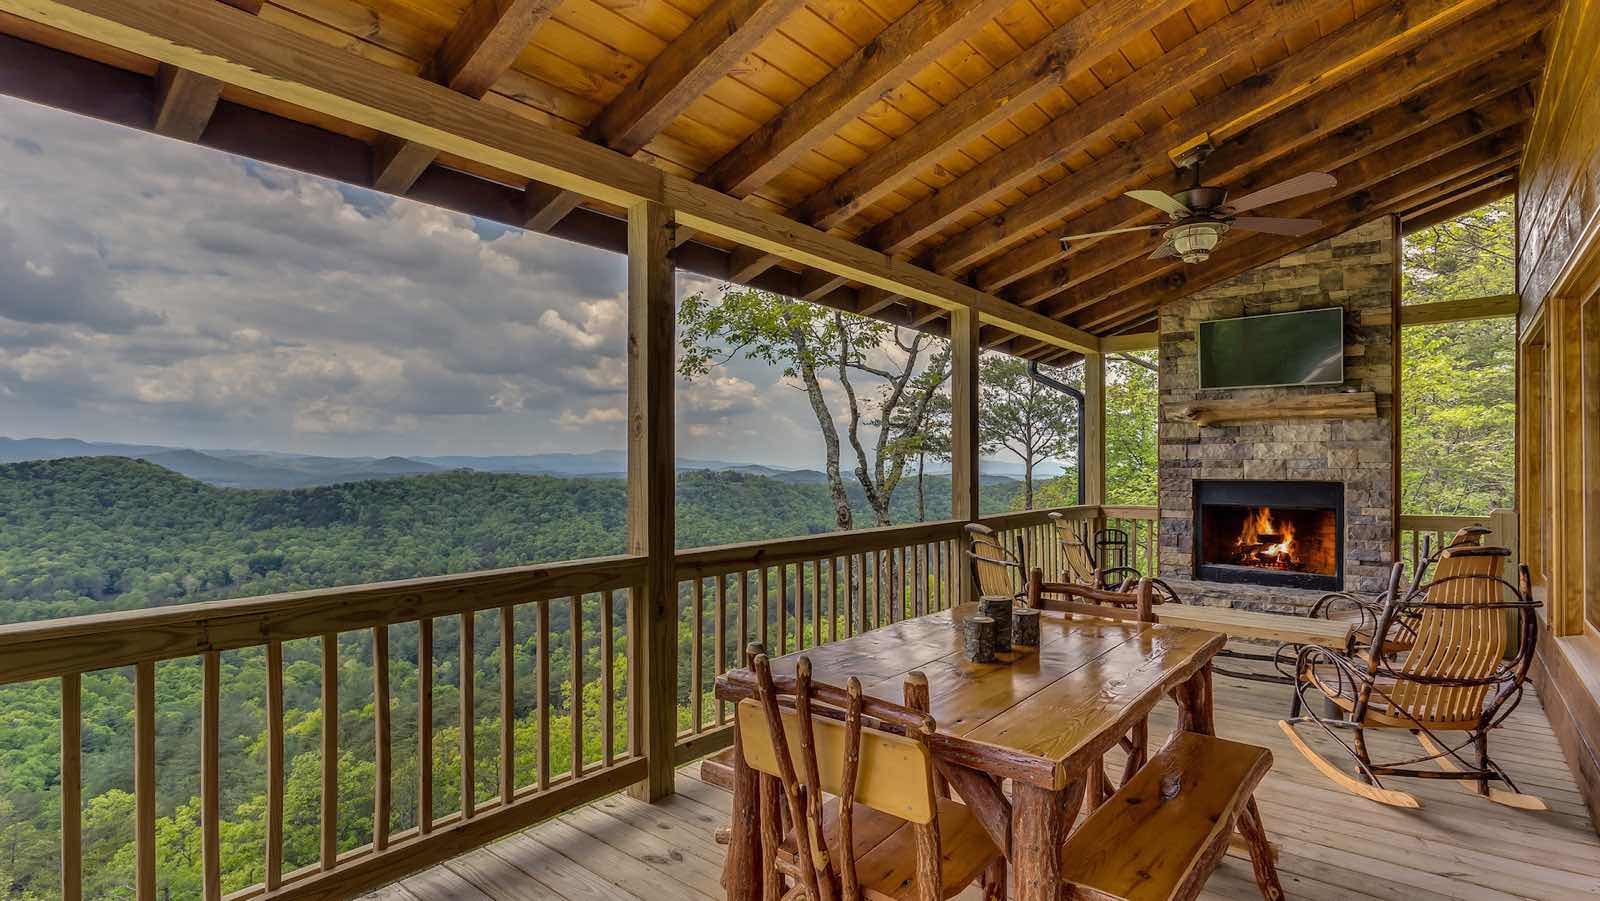 mountains the free for daily a in highlands cabins win south visitor and week carolina nc north rentals guide